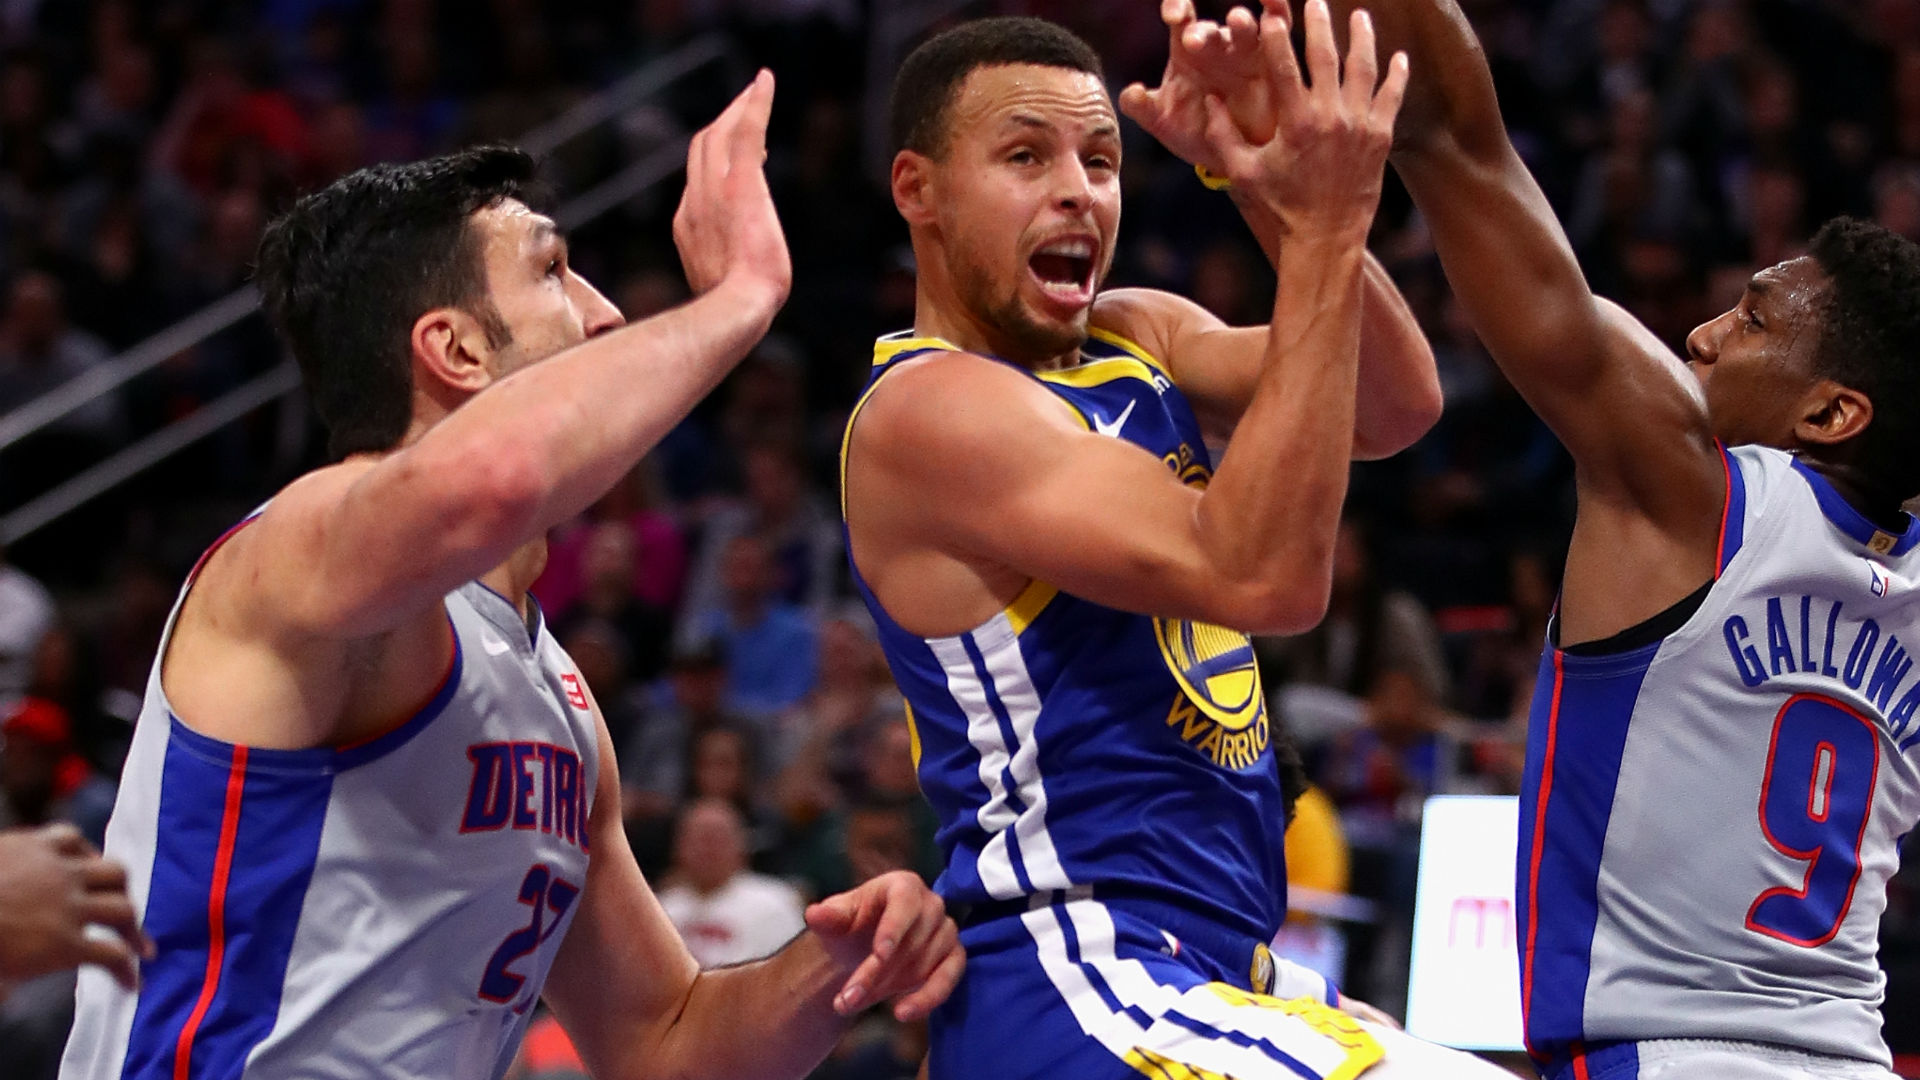 Hawks return home to face Warriors with Stephen Curry